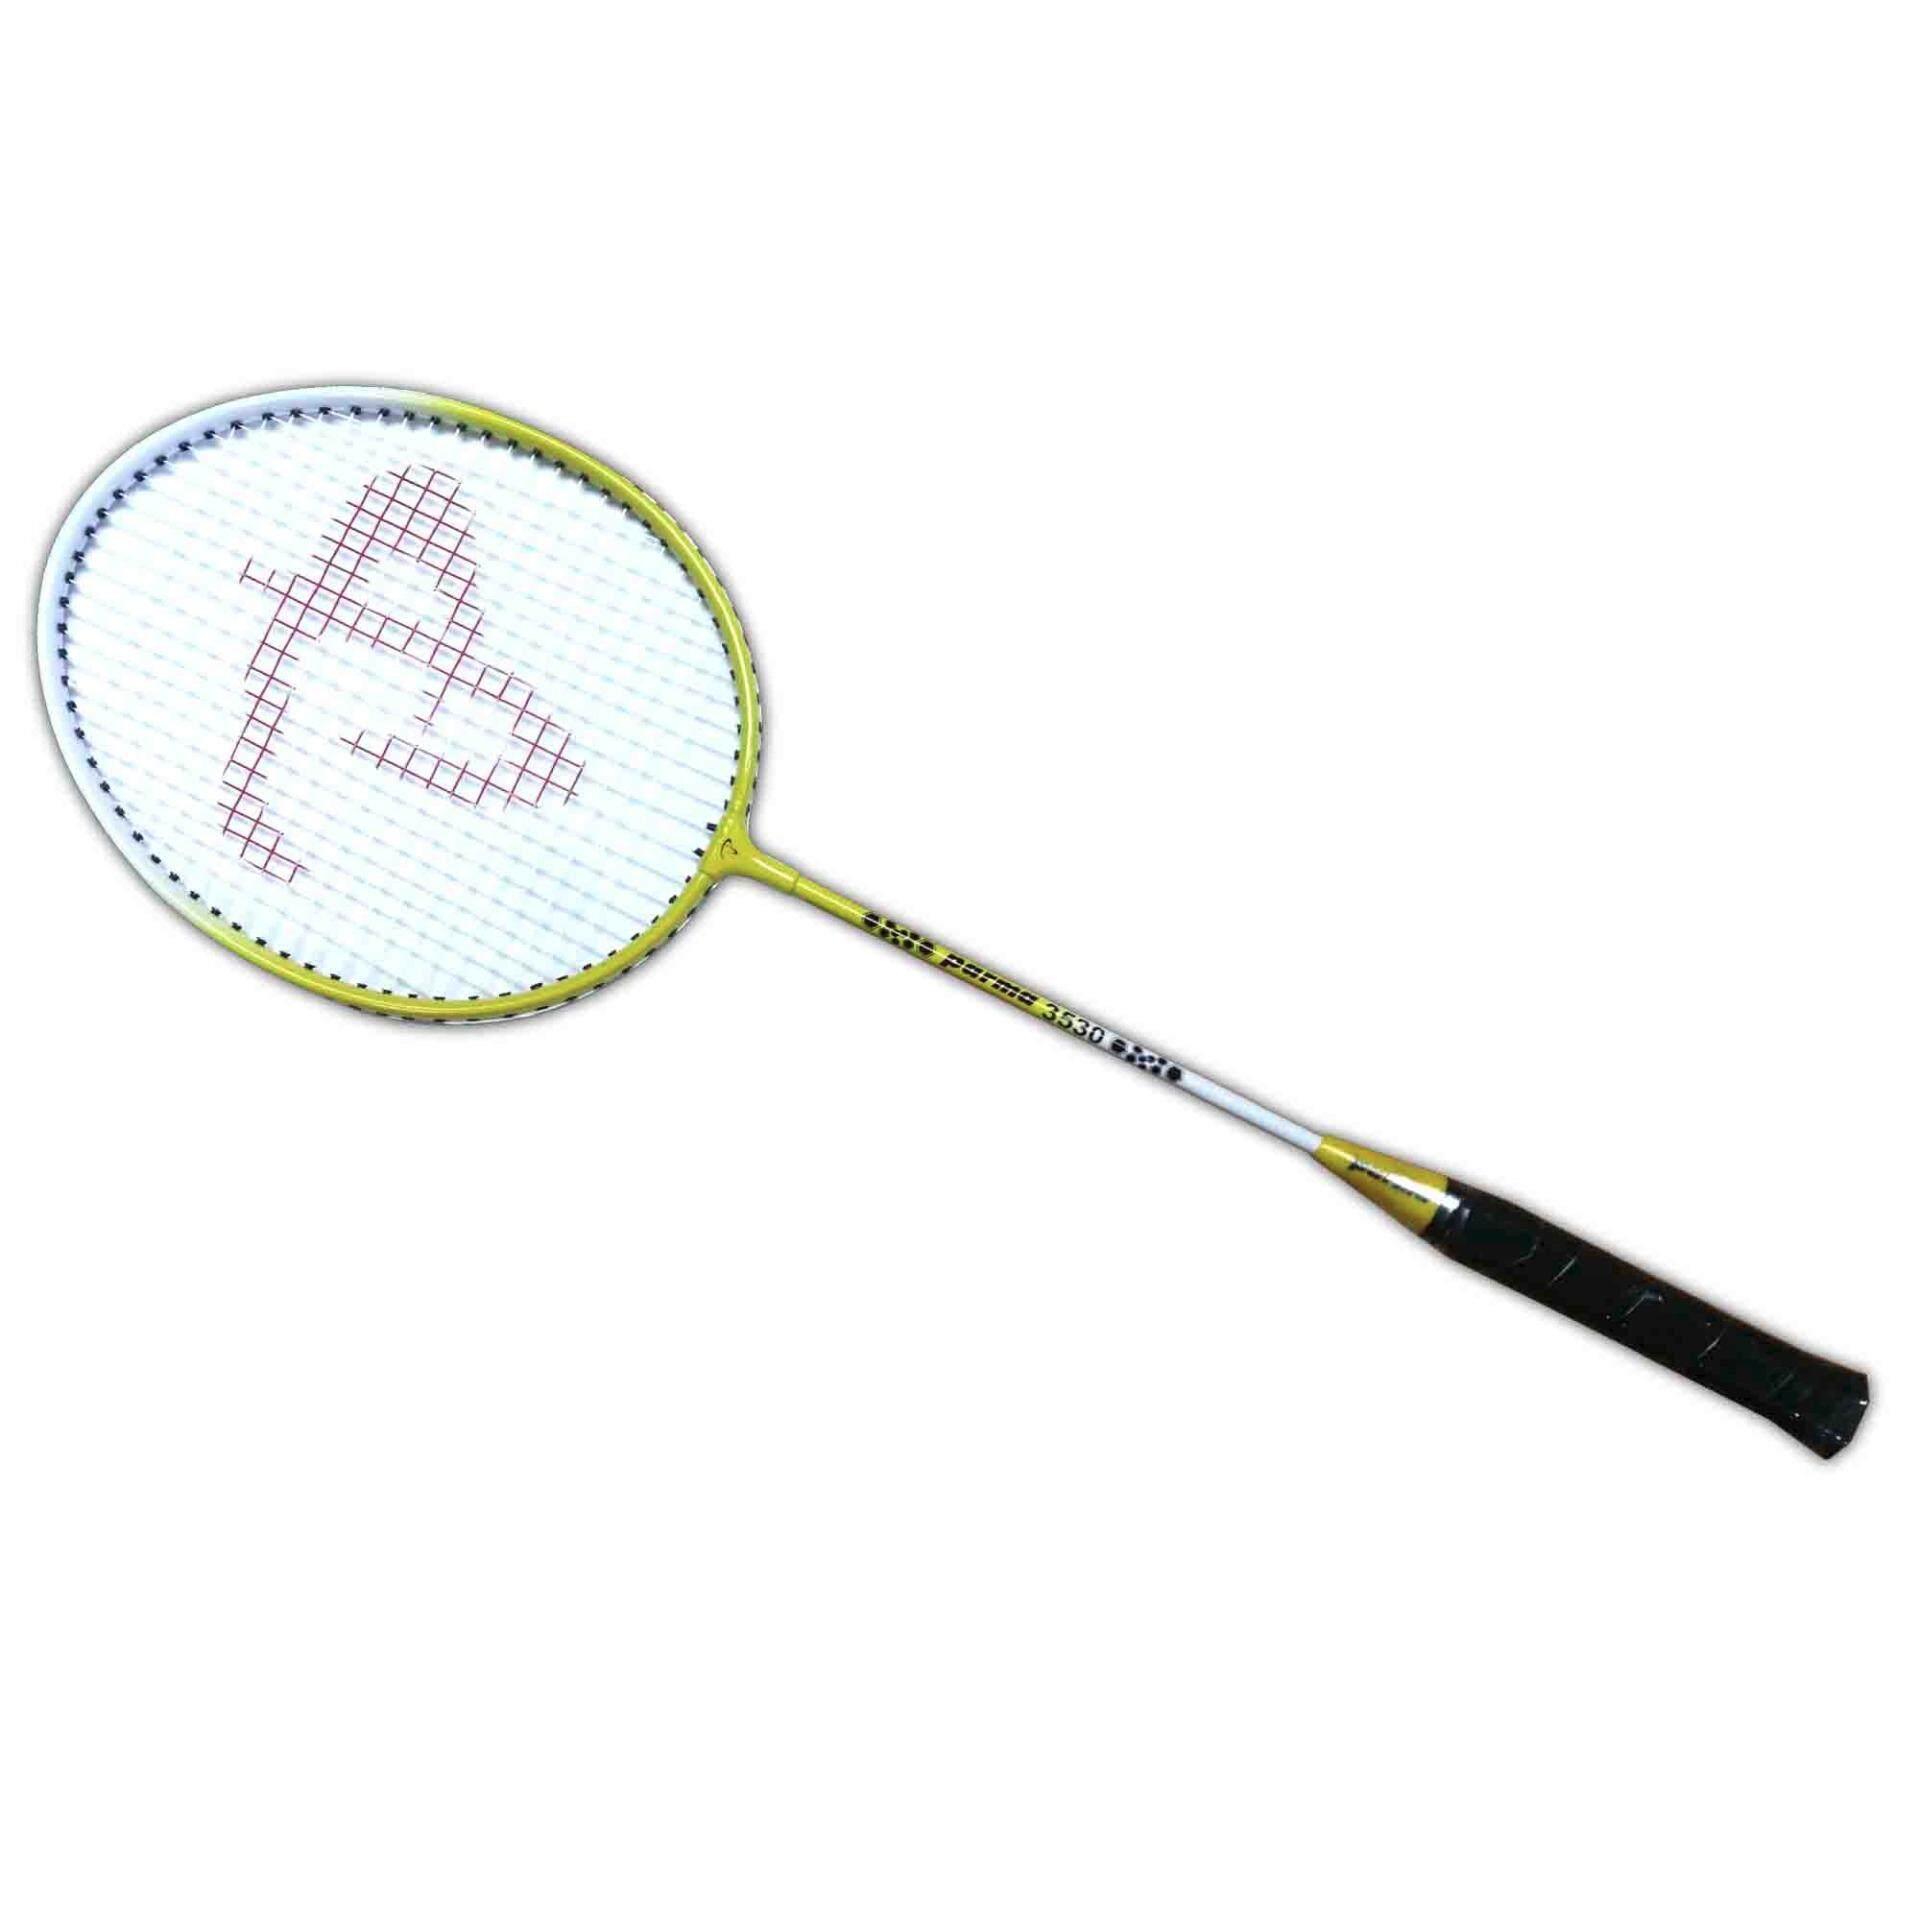 Parma Badminton Racket 3530